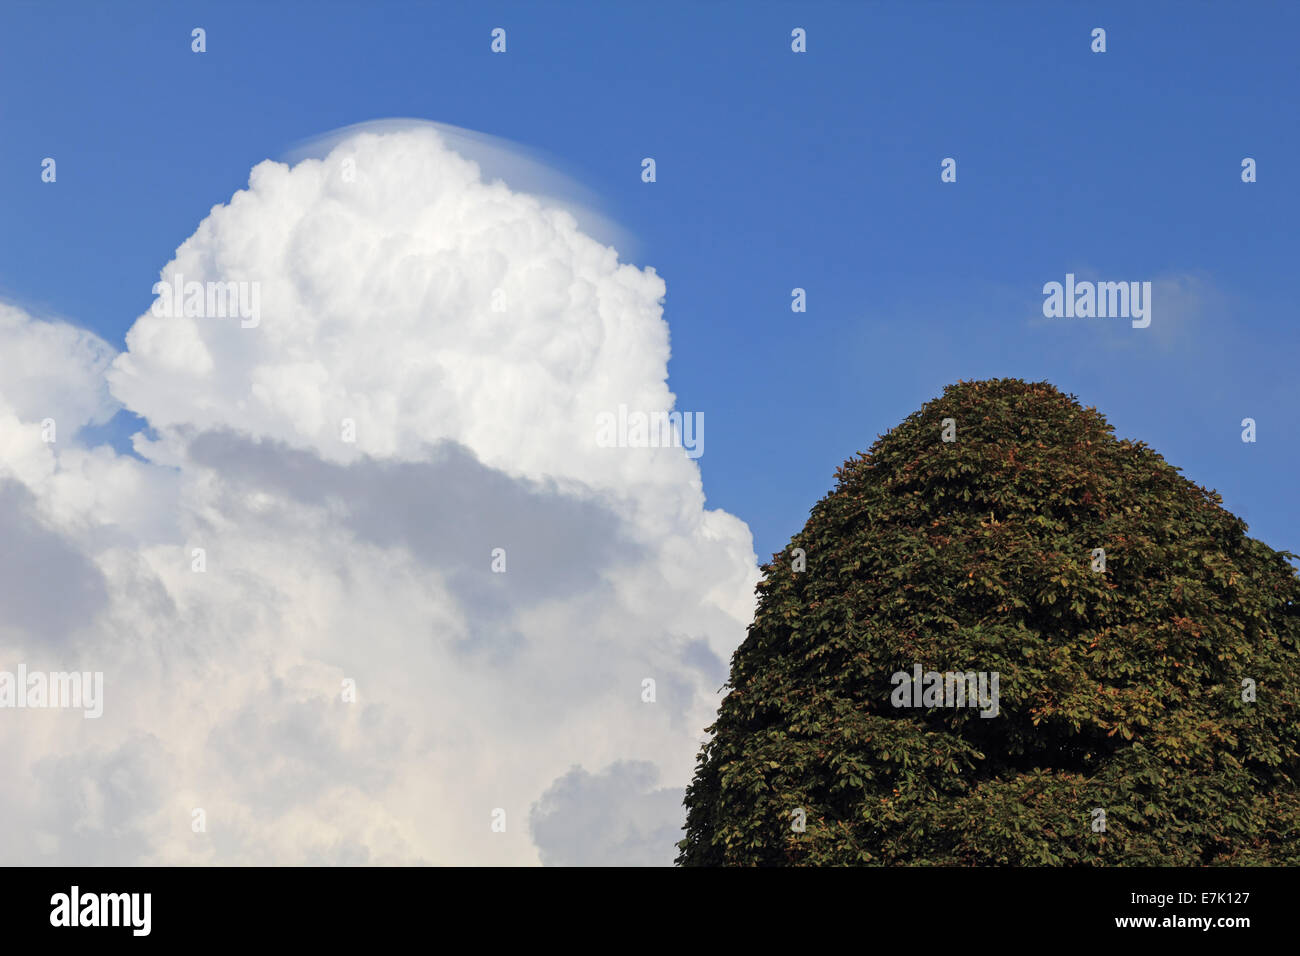 Bushy Park, SW London, England, UK. 19th September 2014. Unusual cloud formation in the sky over South West London. - Stock Image